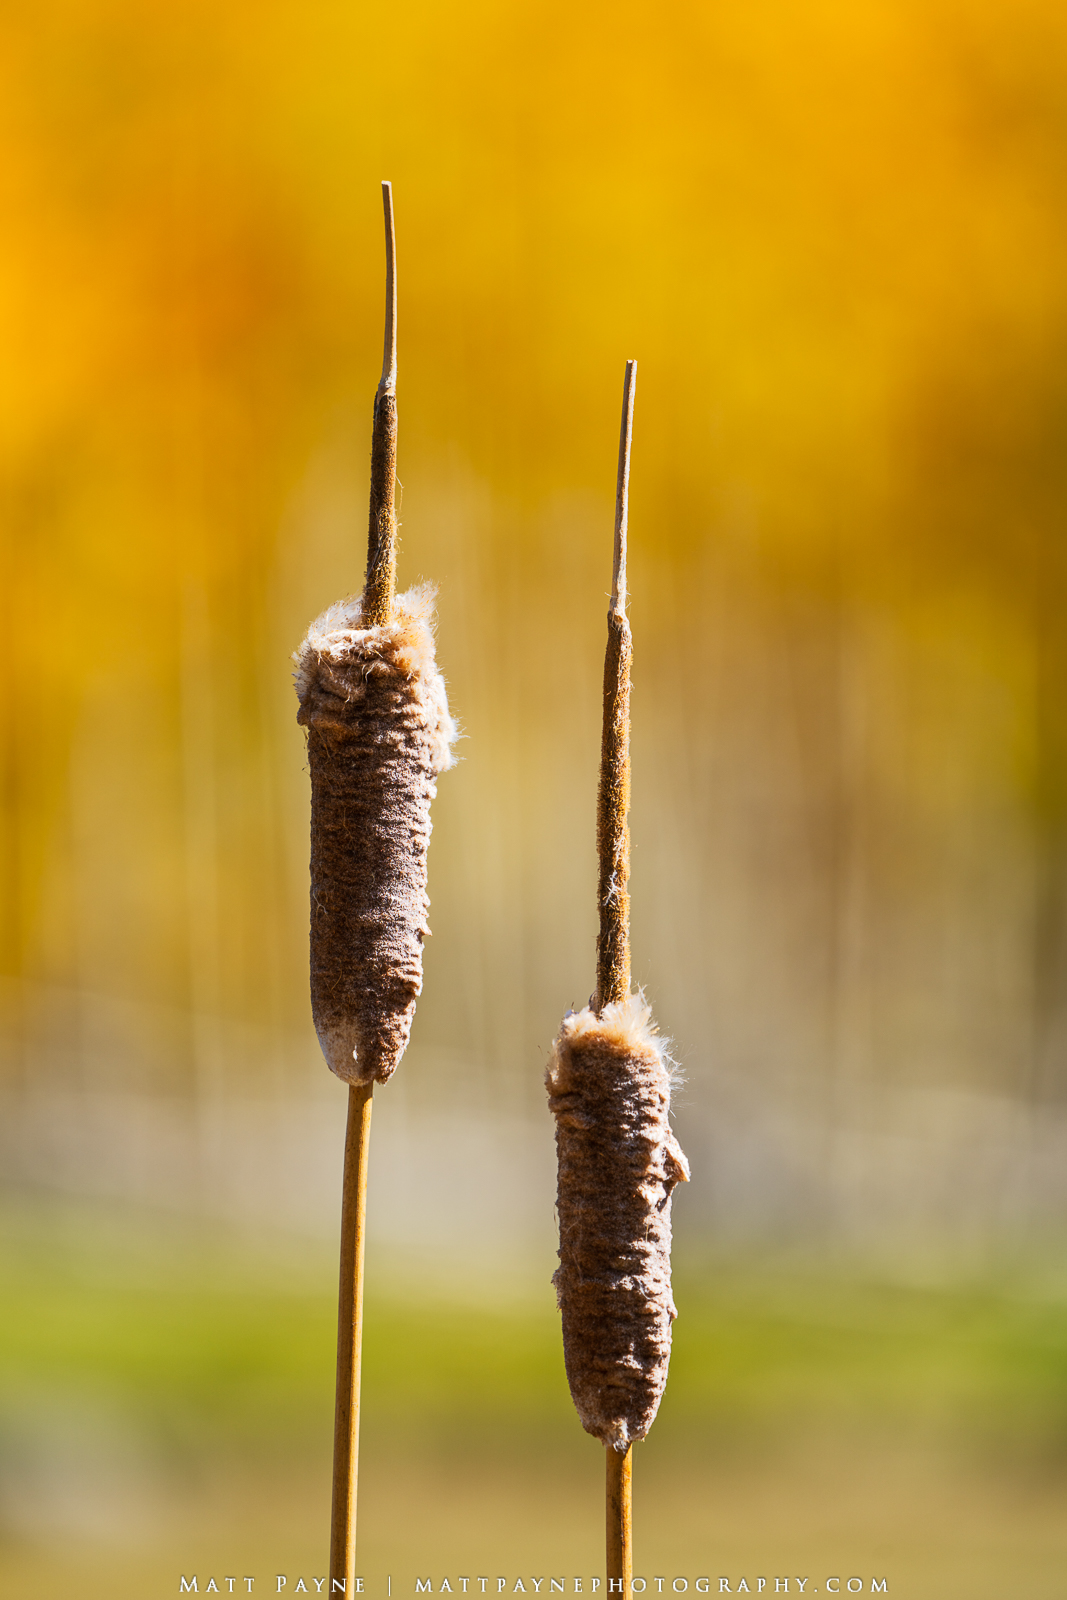 I've always thought cattails were pretty awesome oddities of nature. When I saw these two with a nice autumn / fall backdrop...